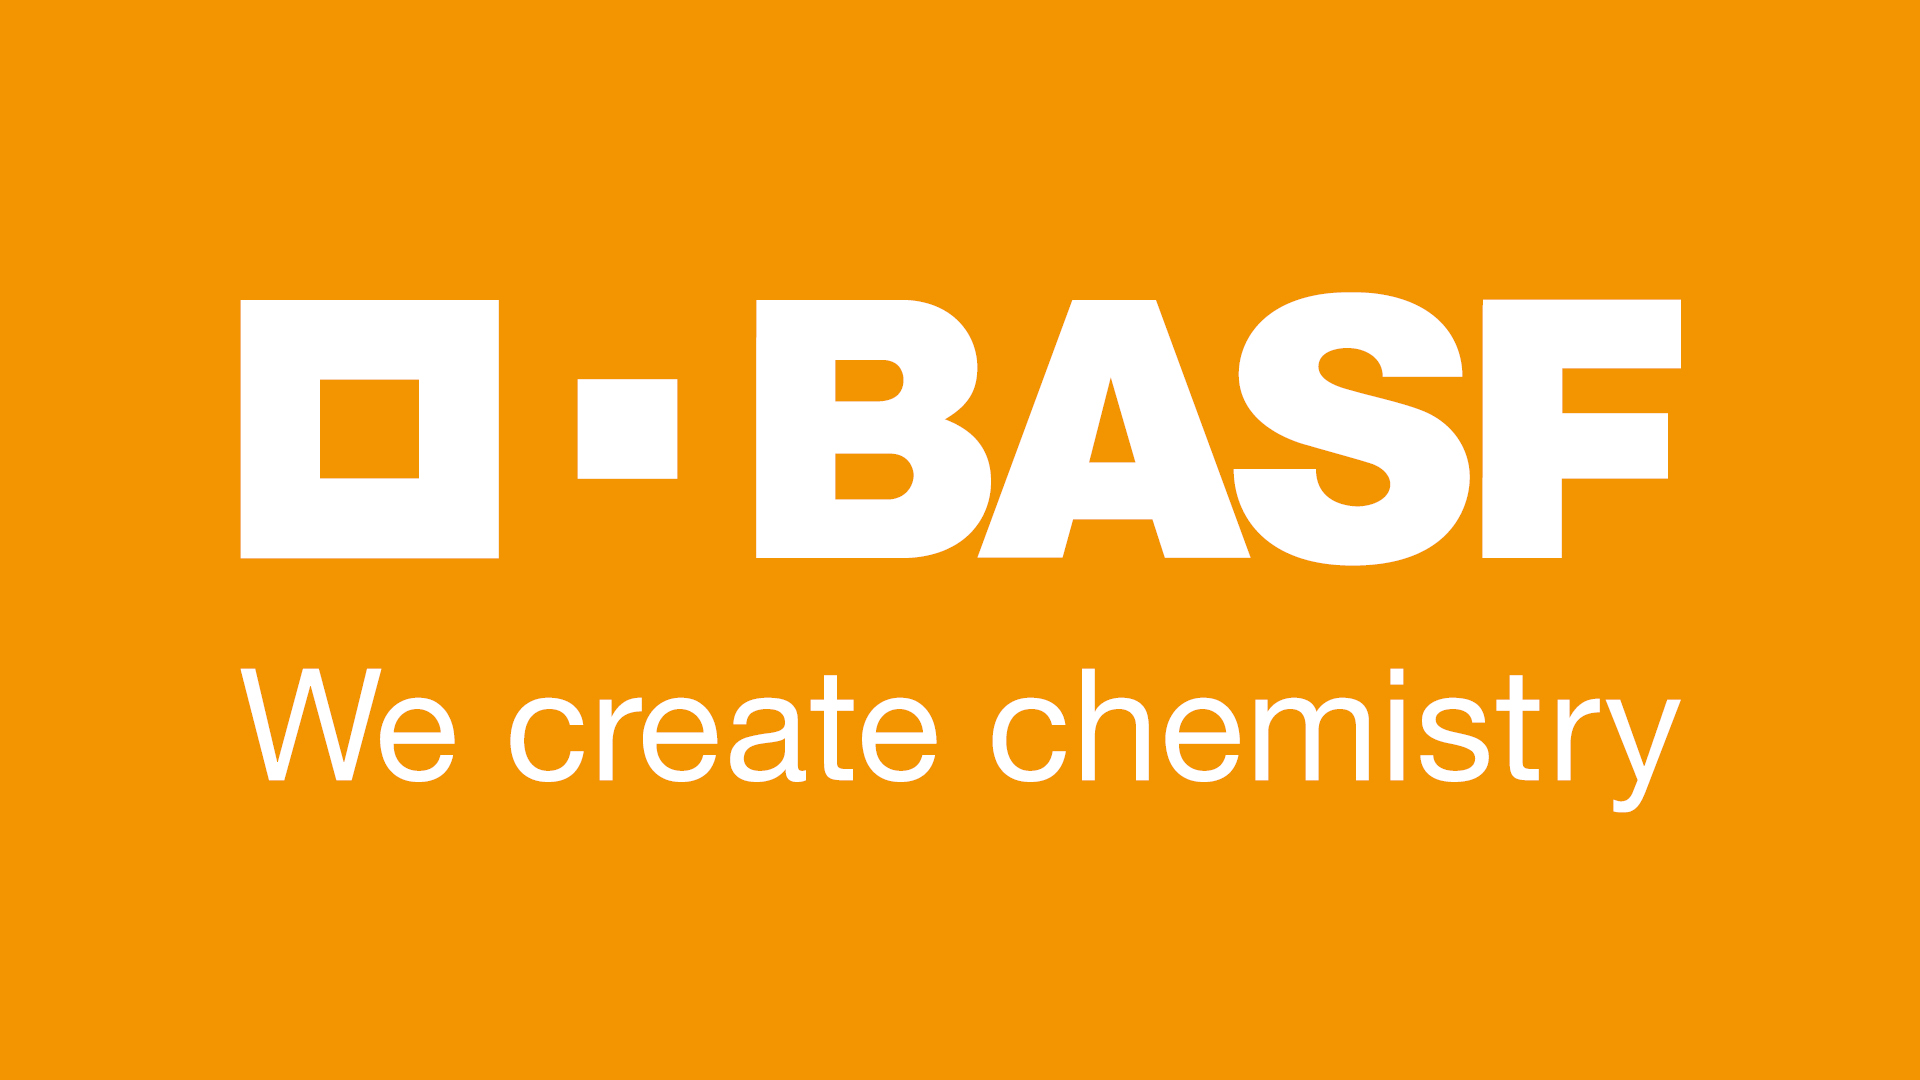 BASF_NewBrand_1920x1080_Or_WideScreen.jpg